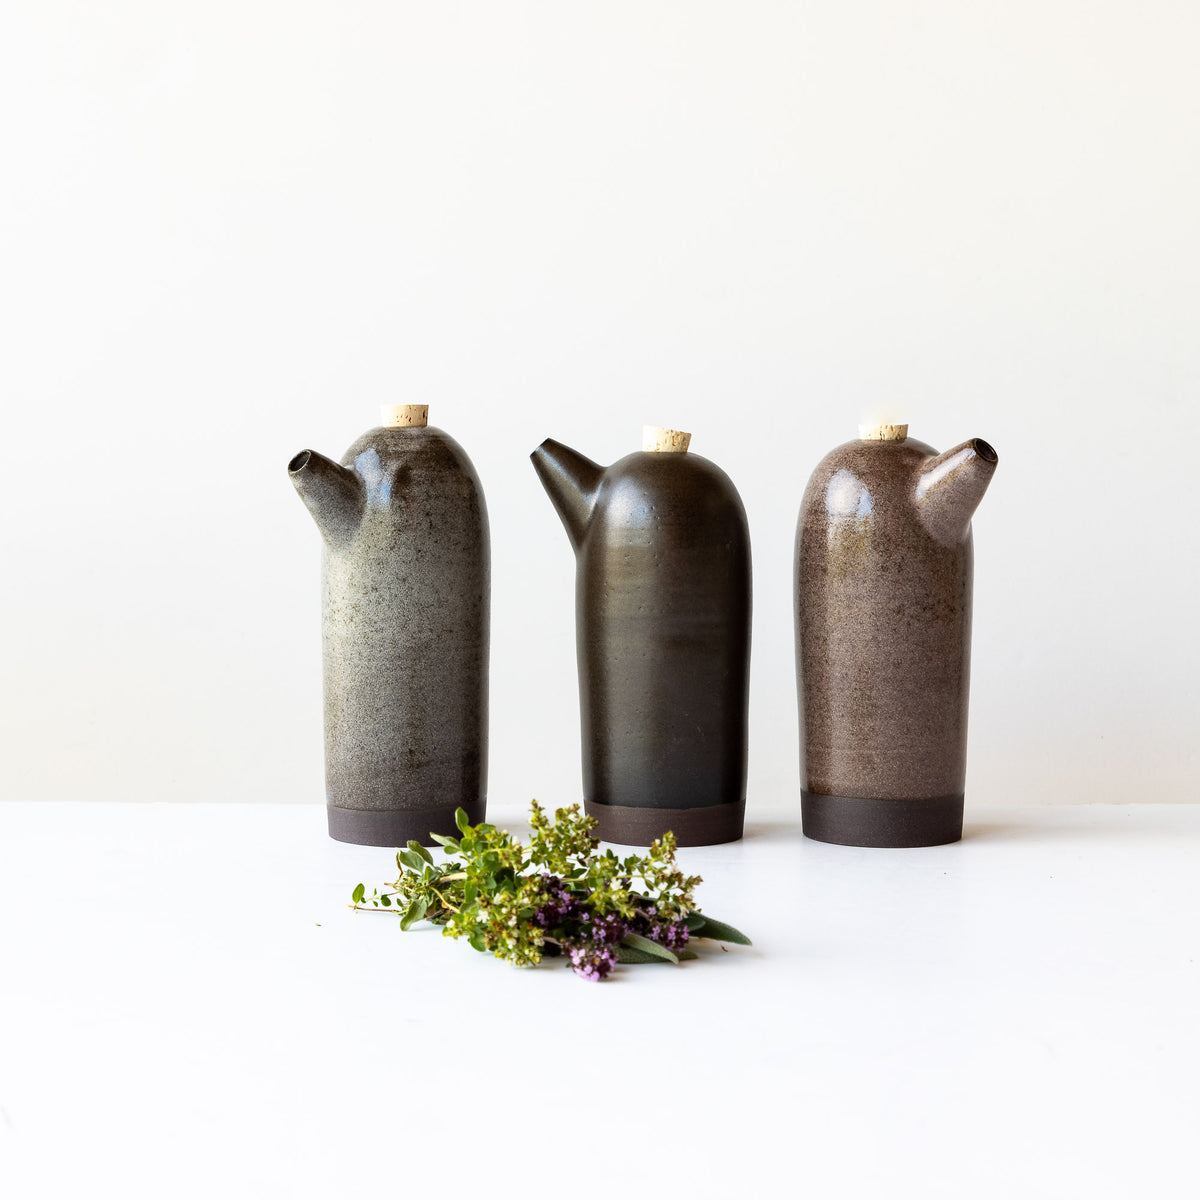 Three Handmade Stoneware Vinegar Bottles - Sold by Chic & Basta